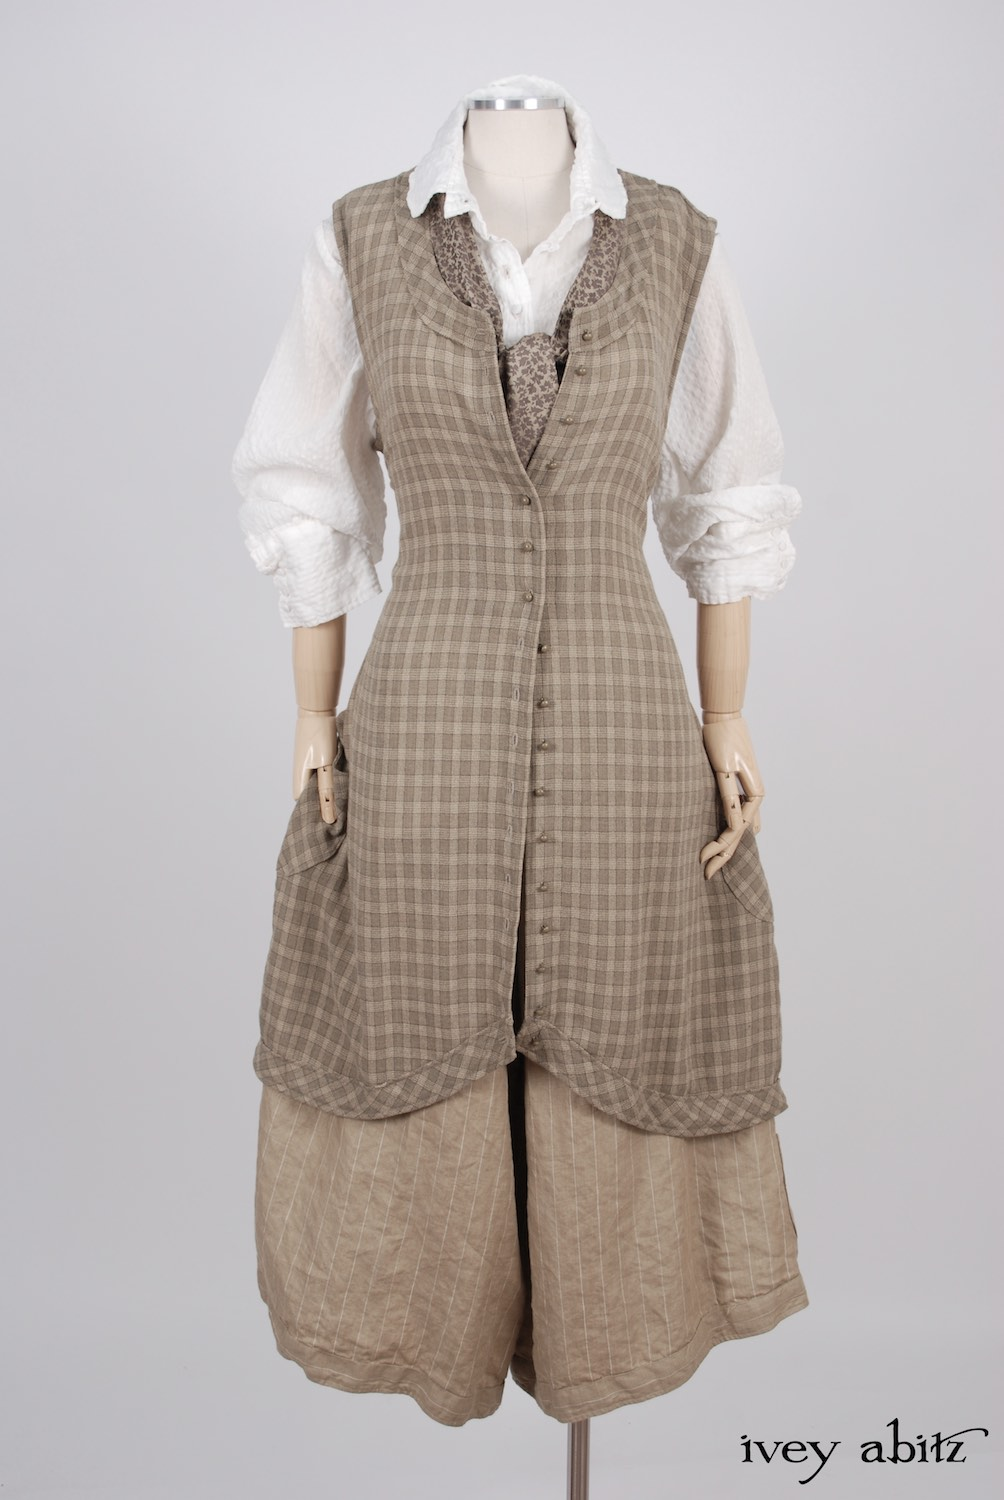 Ivey Abitz - Truitt Shirt in Dove Striped Voile  - Truitt Frock in Flaxseed Plaid Weave  - Holkham Hall Necktie in Flaxseed Leafy Silk Linen  - Montague Trousers in Sandy Pinstriped Linen, High Water Length